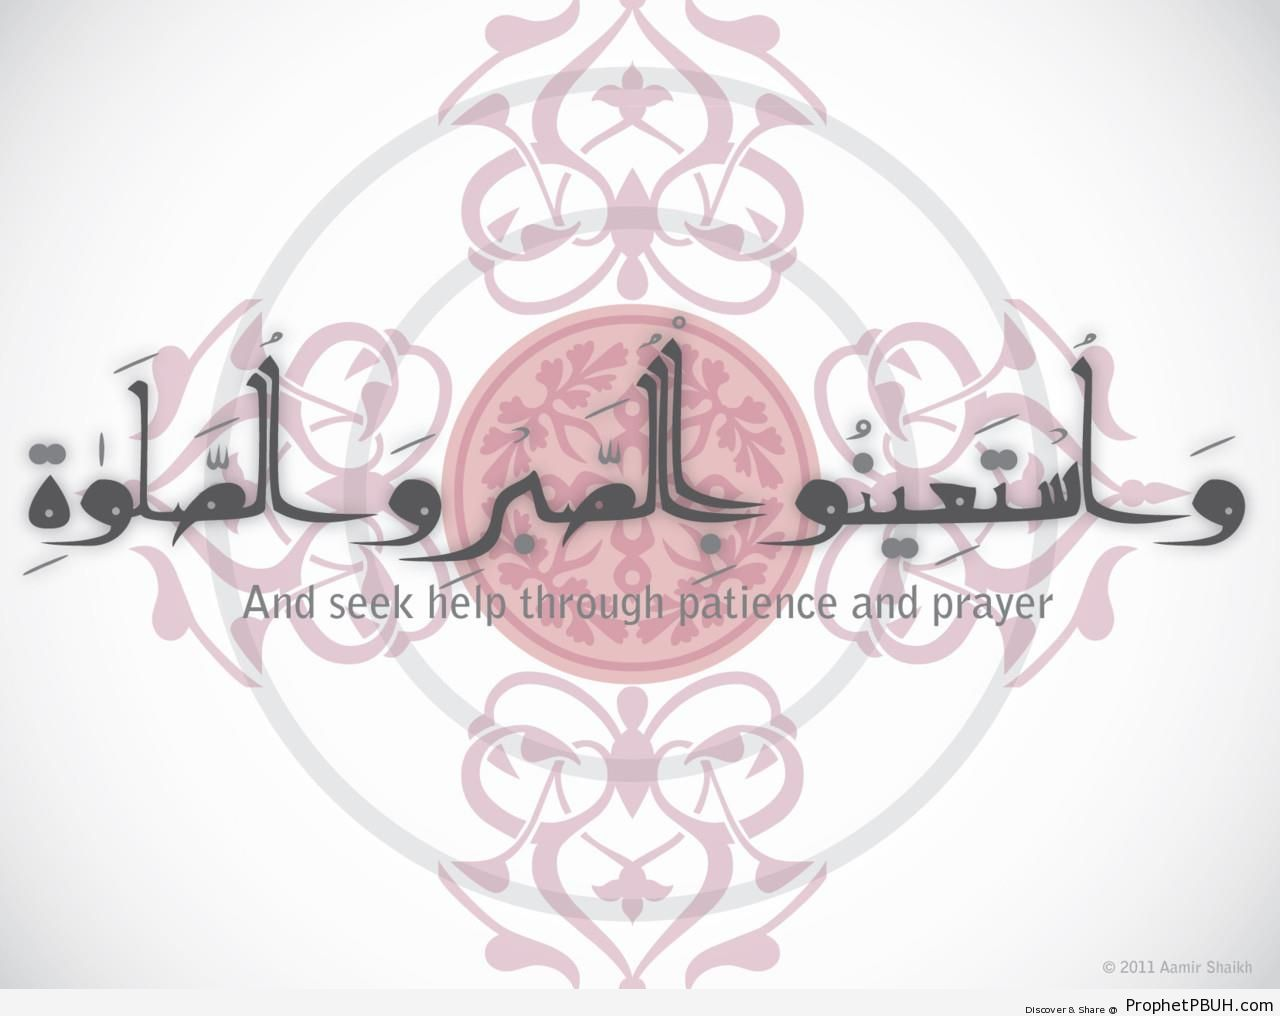 Patience and Prayer (Quran 2-45; Surat al-Baqara) - Islamic Quotes About Patience (Sabr)